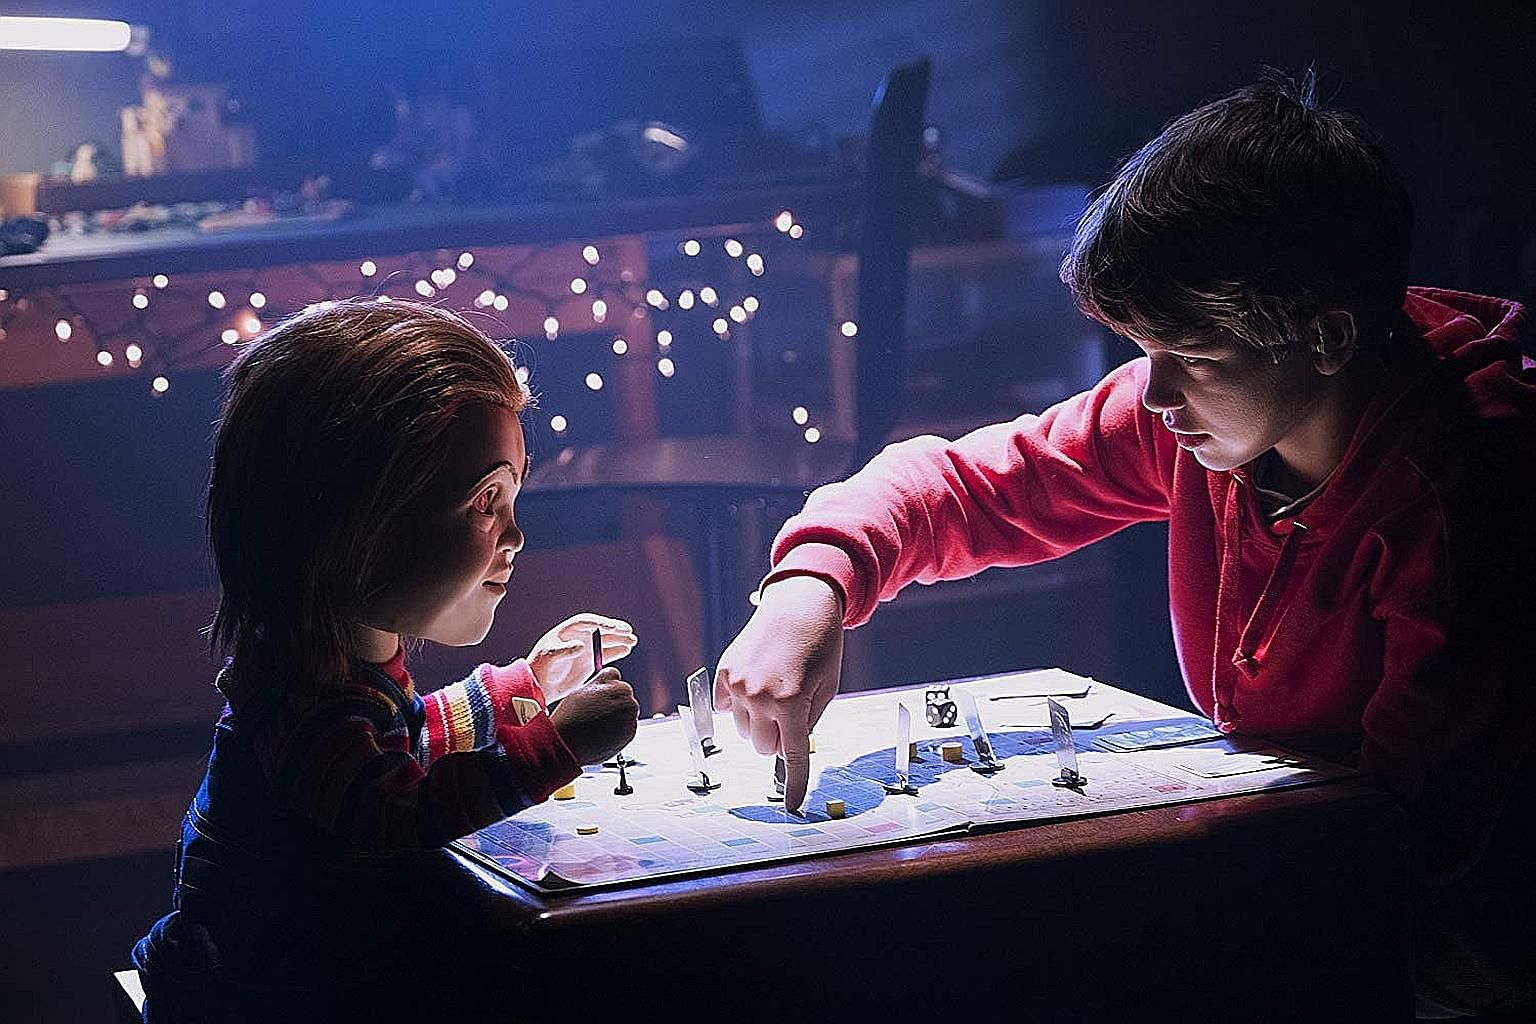 In Child's Play, Chucky is a birthday present to a lonely hearing-impaired 13-year-old played by Gabriel Bateman.